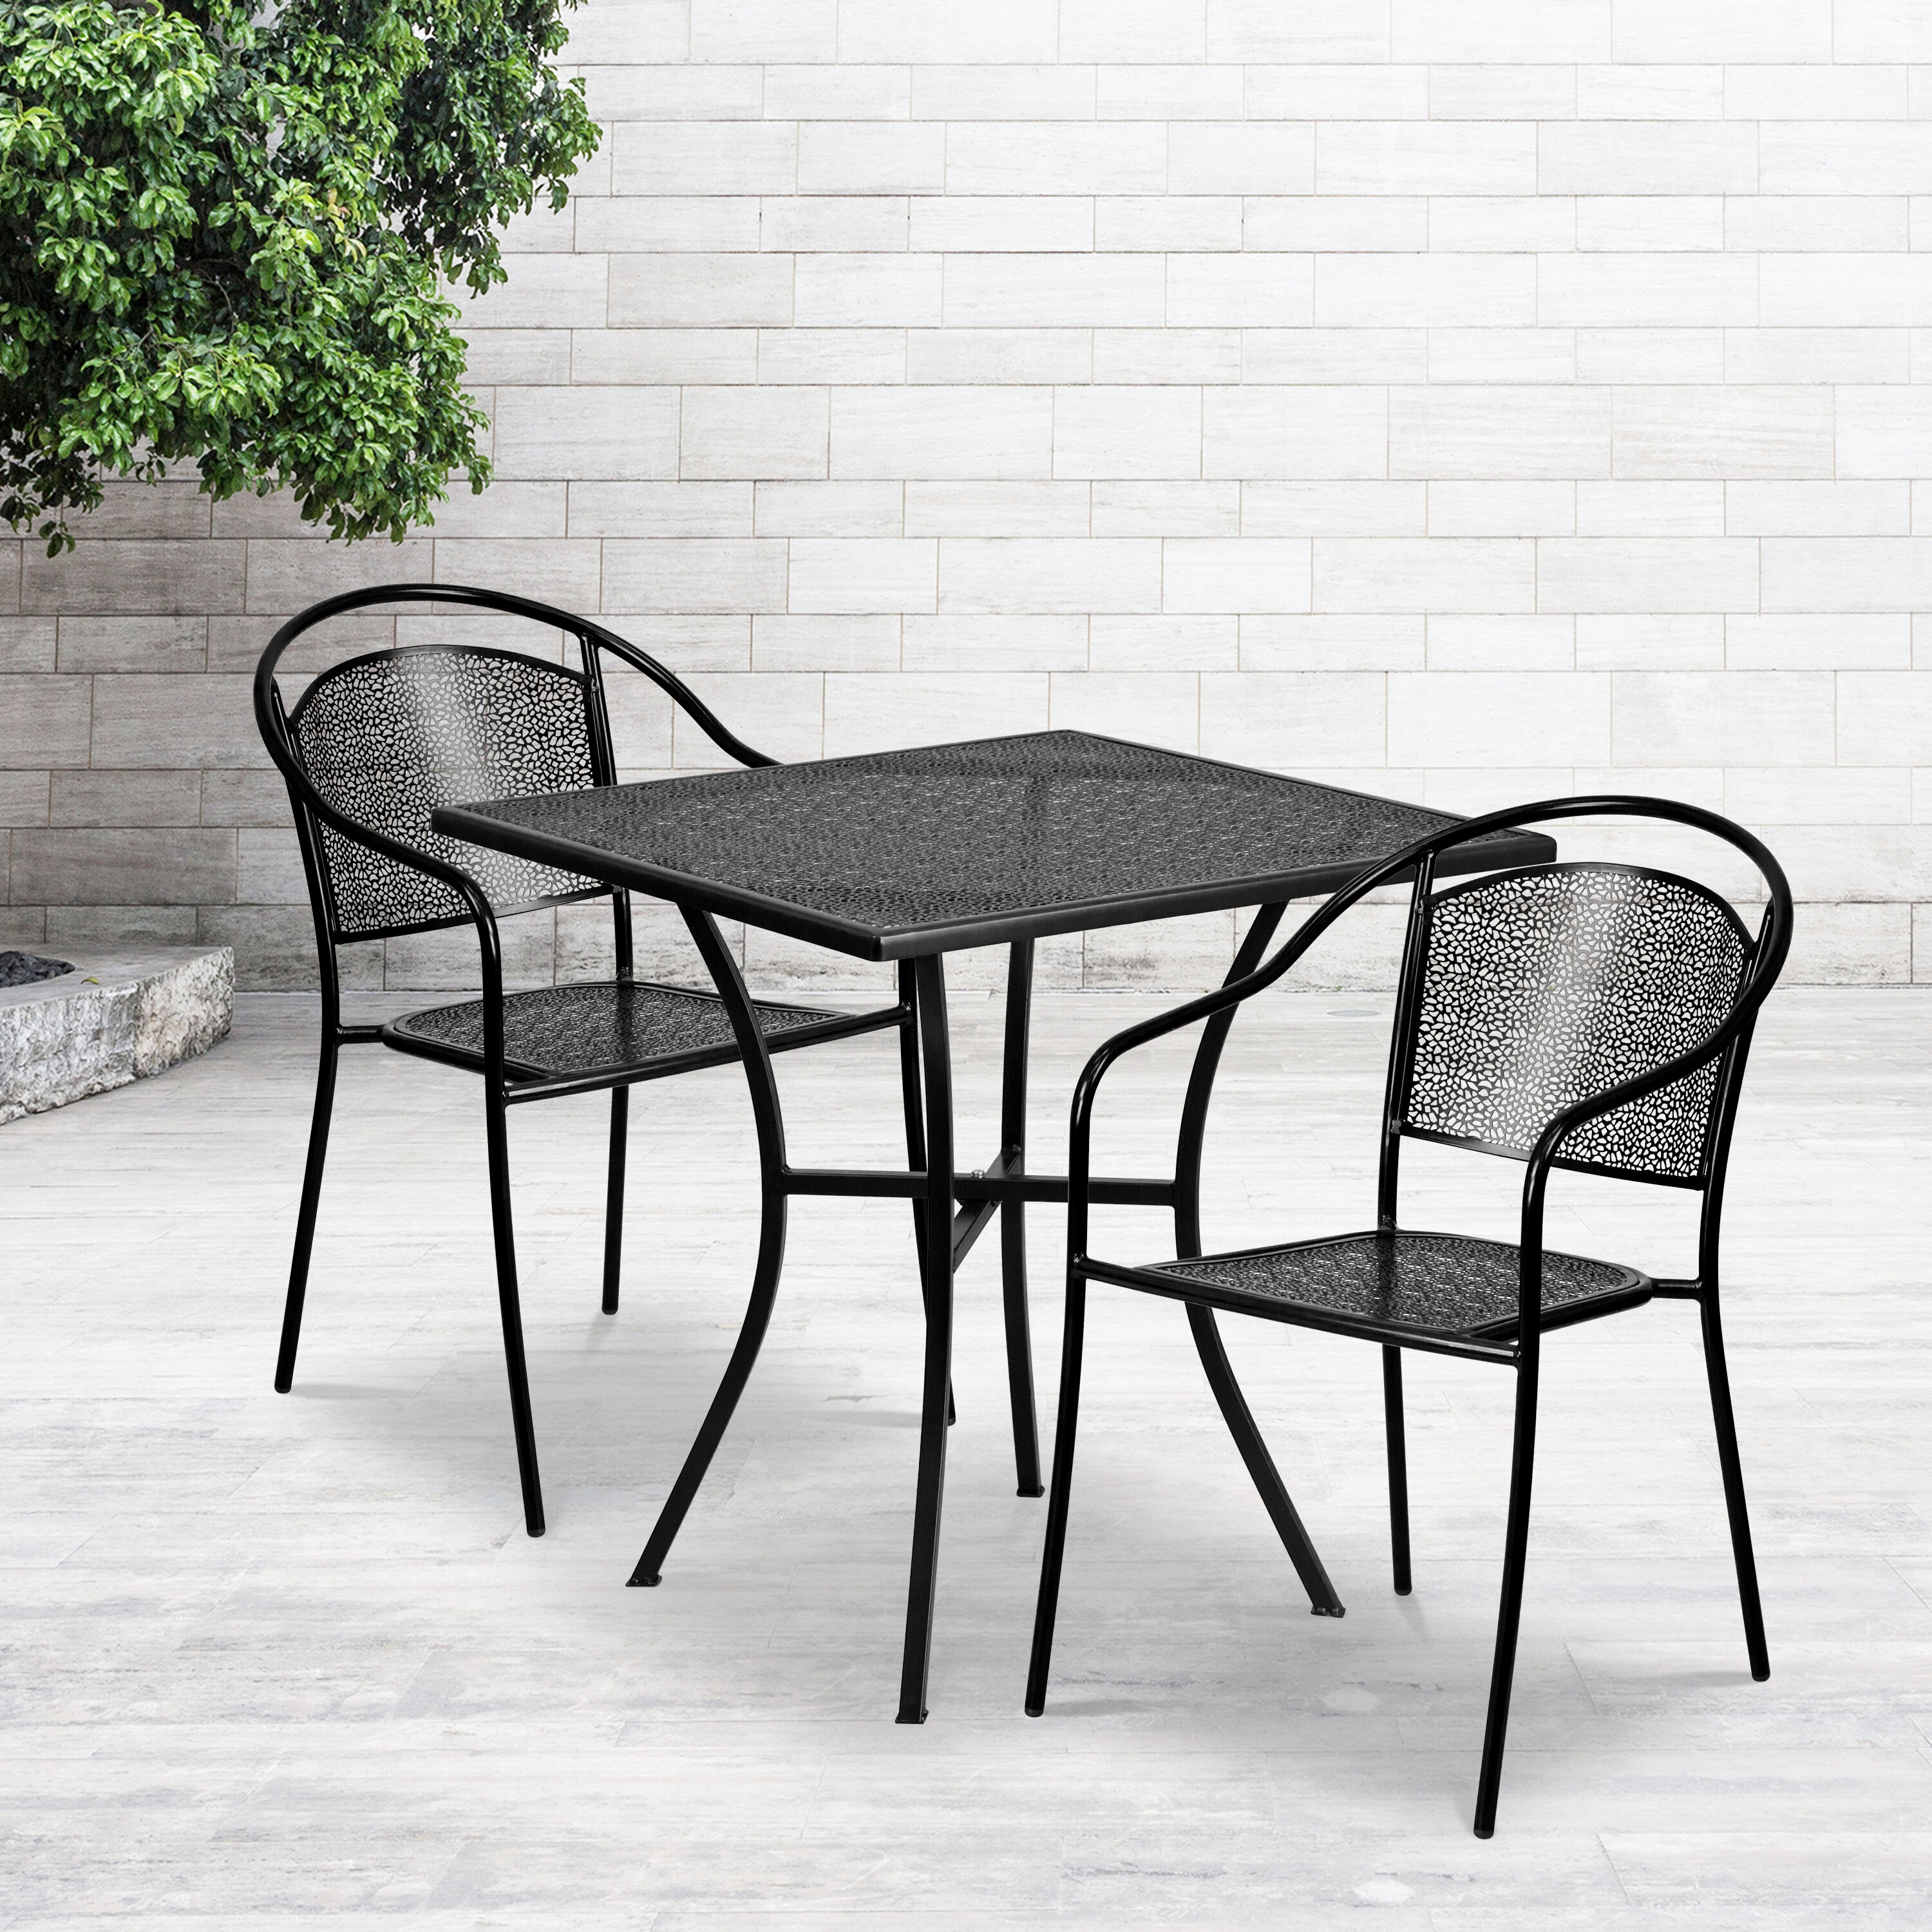 commercial grade 28 square black indoor outdoor steel patio table set with 2 round back chairs